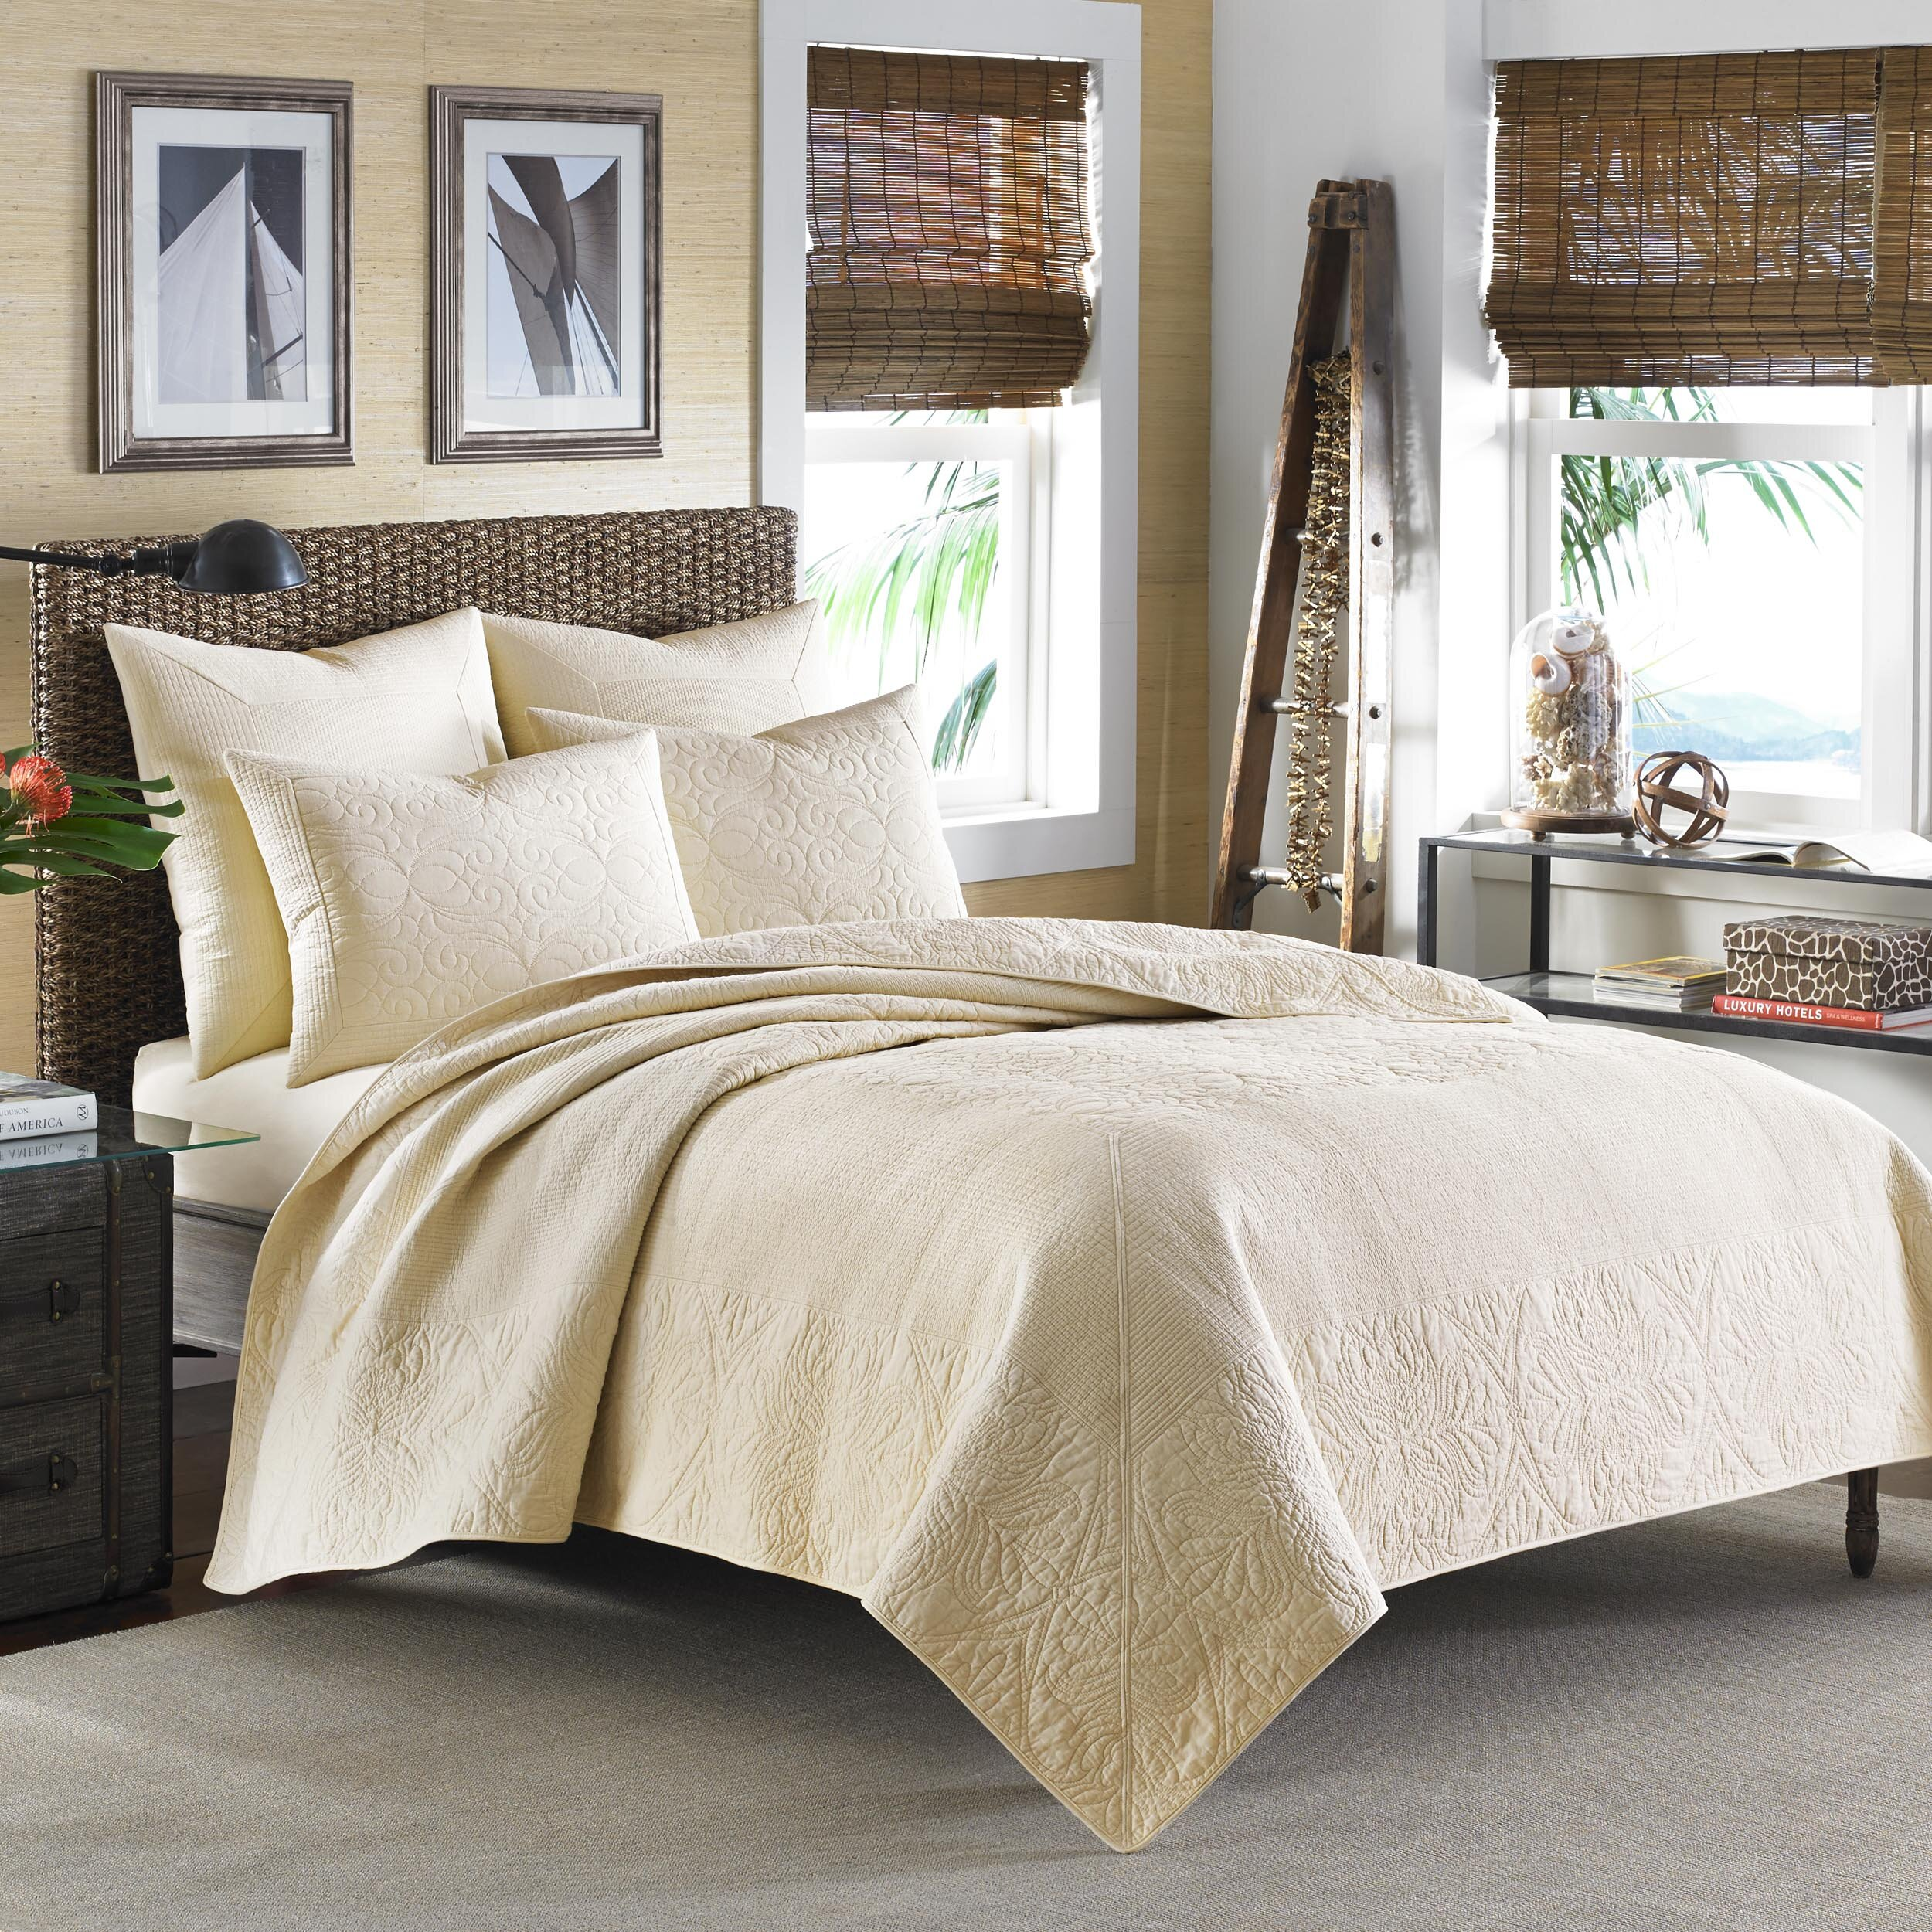 Tommy bahama bedding nassau quilt collection reviews Tommy bahama bedding